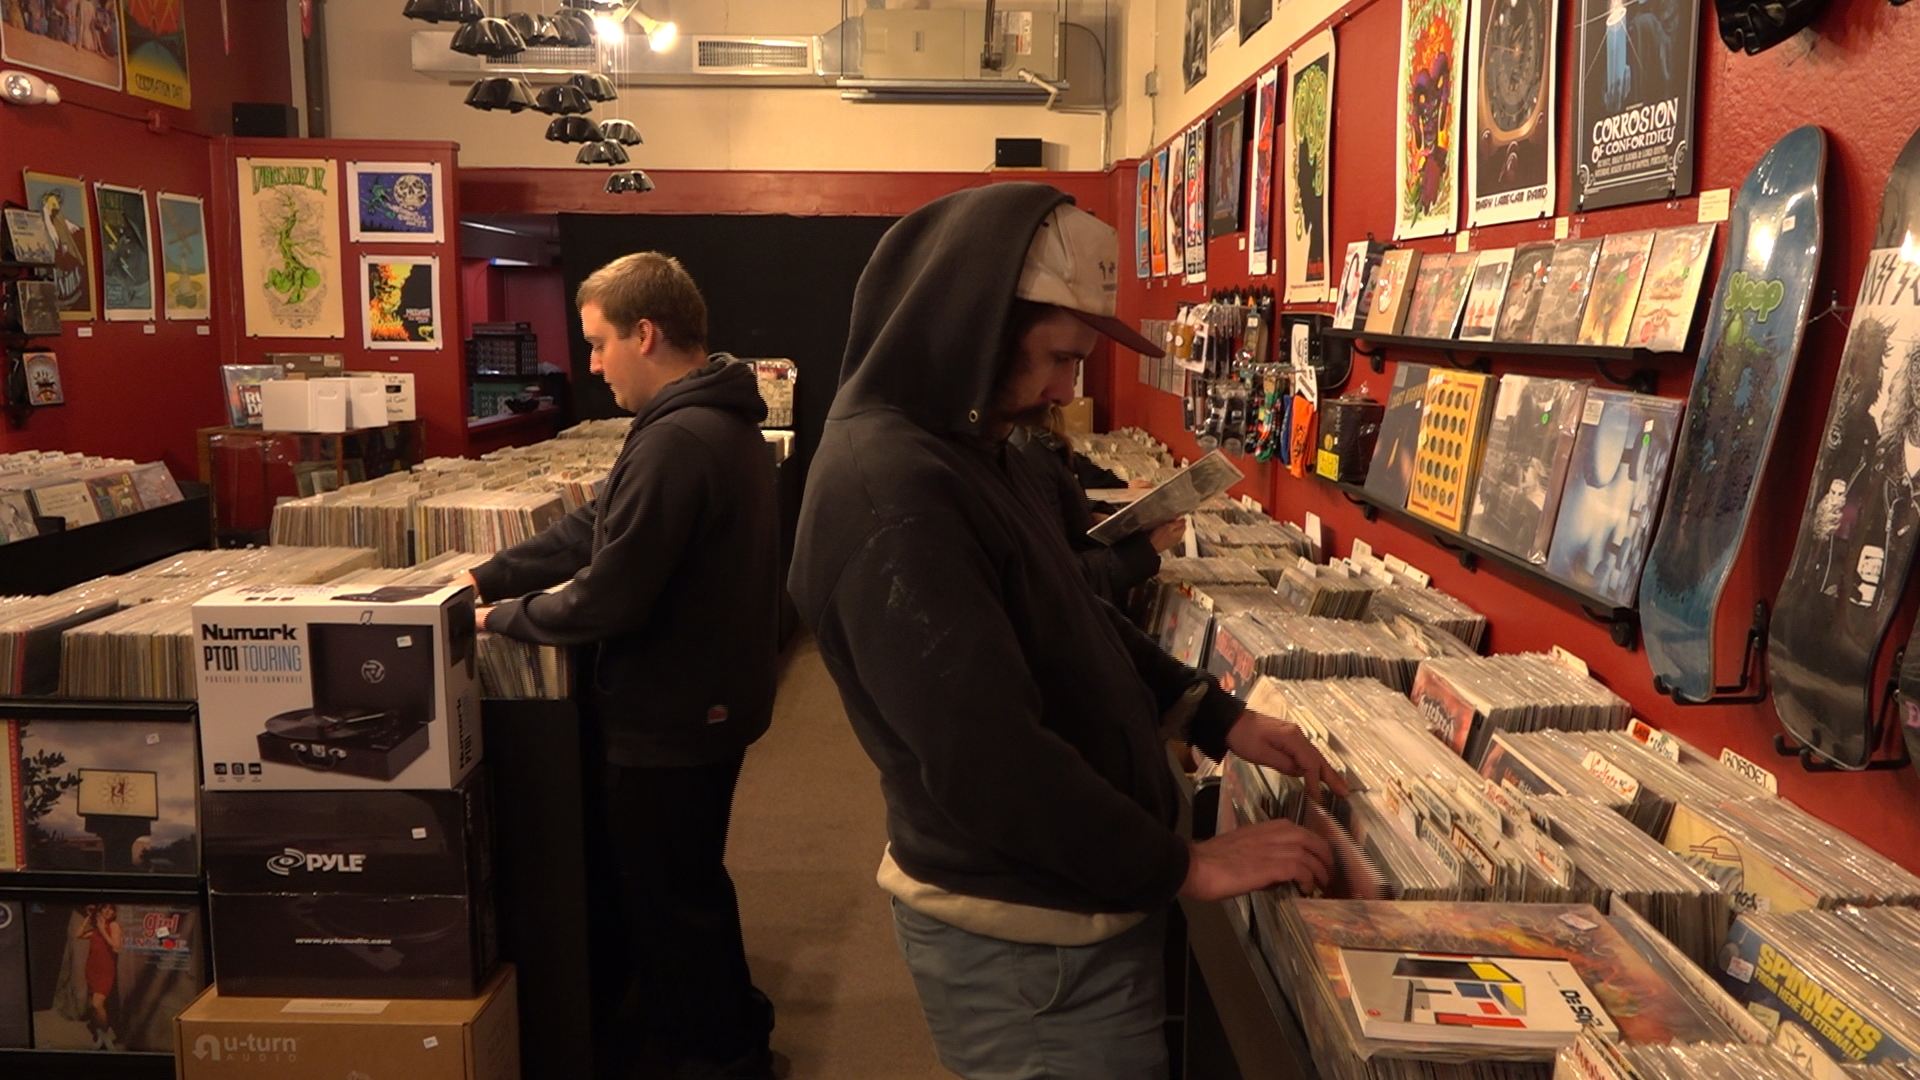 Visit Brattleboro, VT's In the Moment Records, to find out why playing music on old school vinyl records is surviving and thriving in the digital media age.